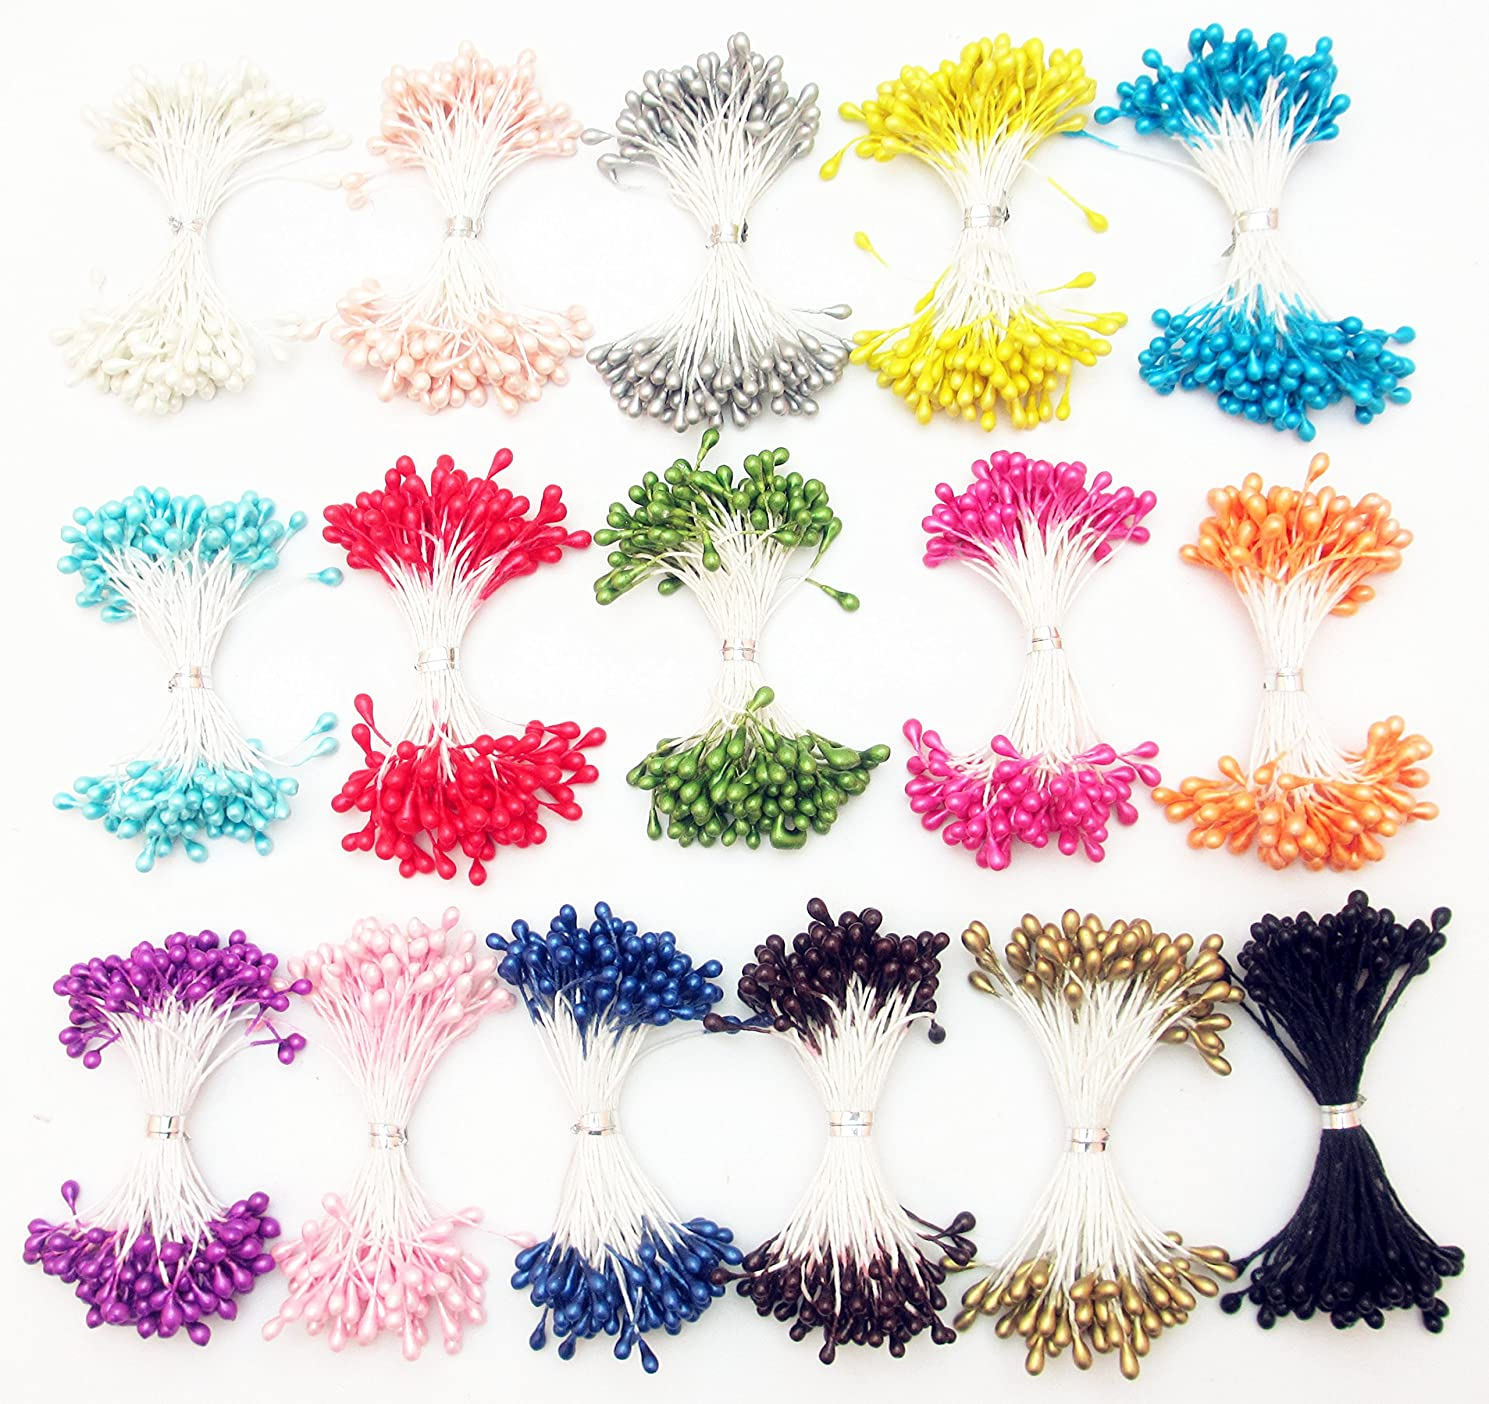 Dandan DIY 1600pcs Multi-Colors Flower Stamen with 3mm Pearl for Sewing Home Wedding Decor Craft Making Diy Supply (16 Colors)